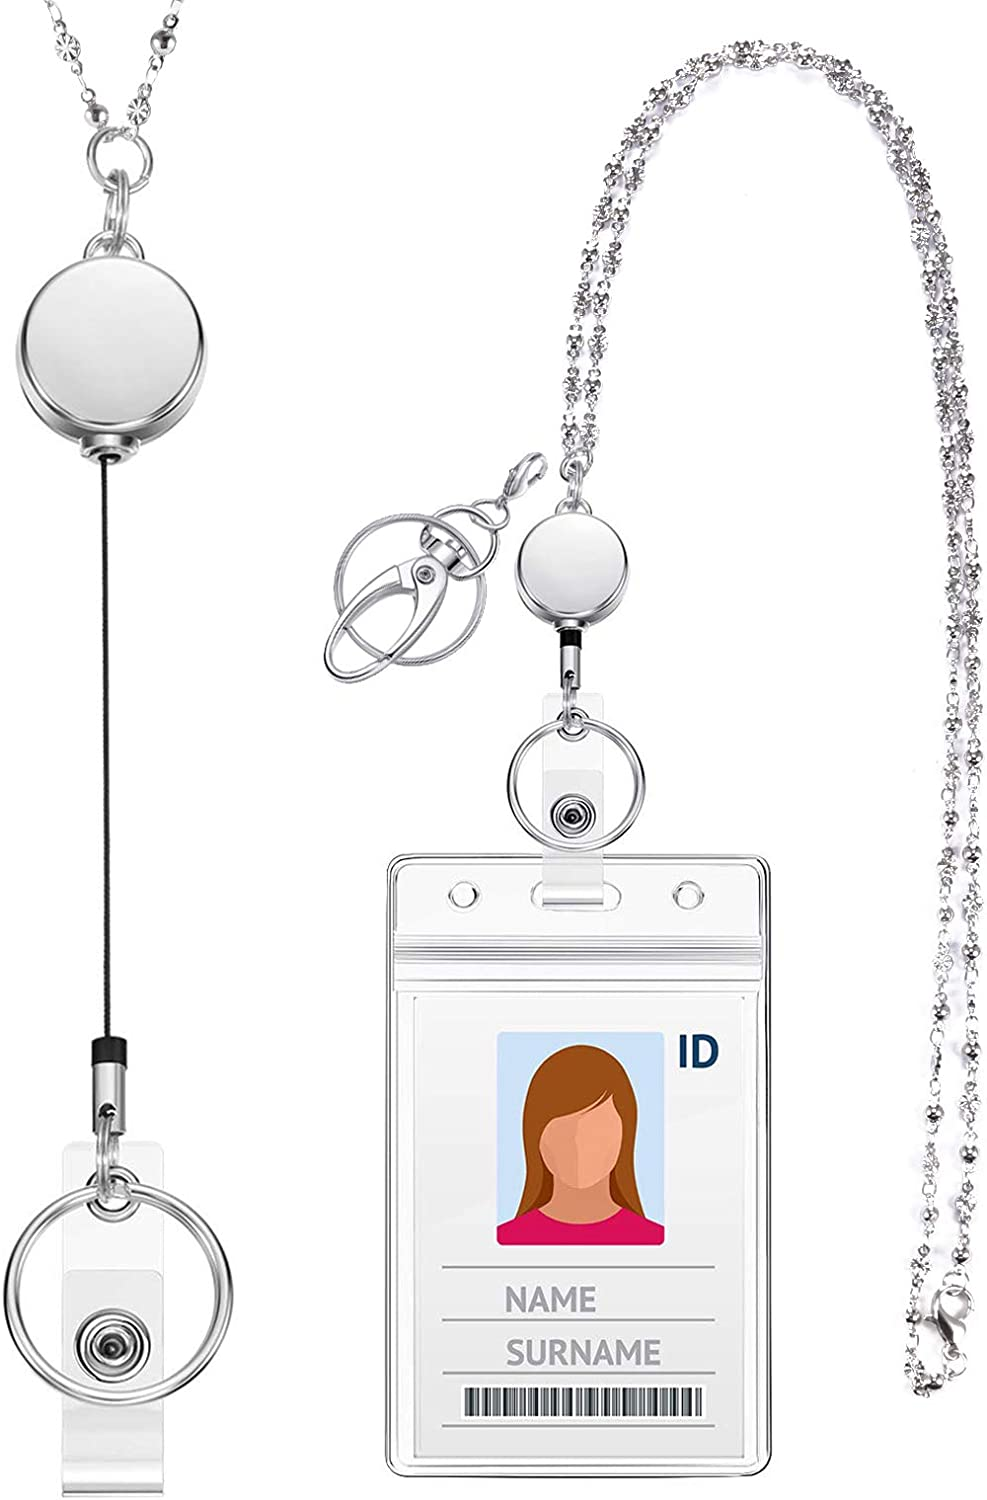 Card Holder Retractable Crystal   Necklace  Hanging Rope  Neck Strap  Lanyard